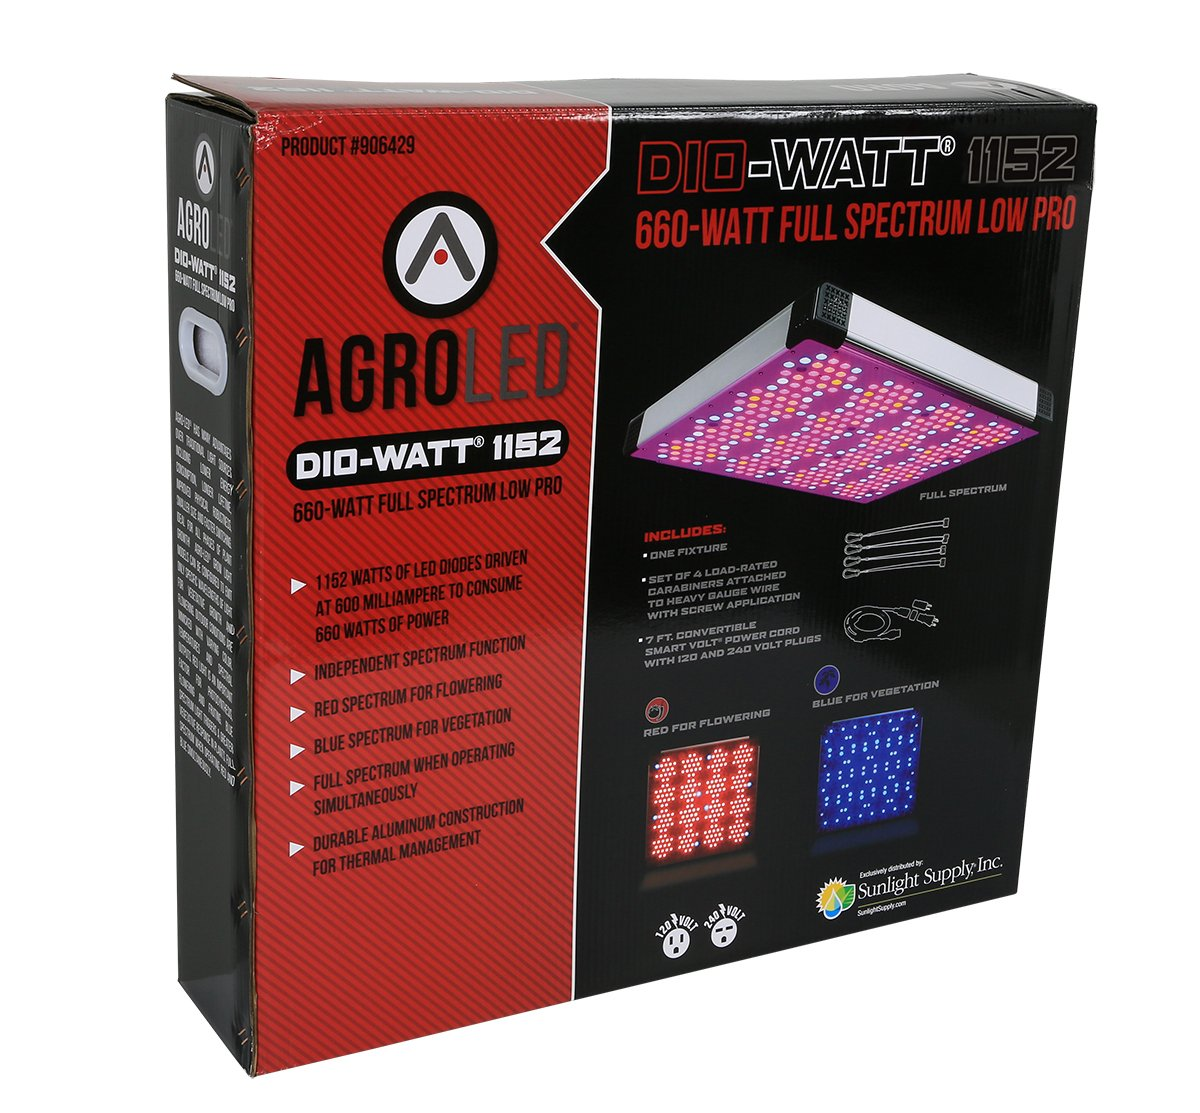 AgroLED Dio-Watt 1152, 660W Full Spectrum Low Pro 906429 Dio-Watt LED Grow Light by AgroLED Dio-Watt 1152, 660W Full Spectrum Low Pro (Image #1)